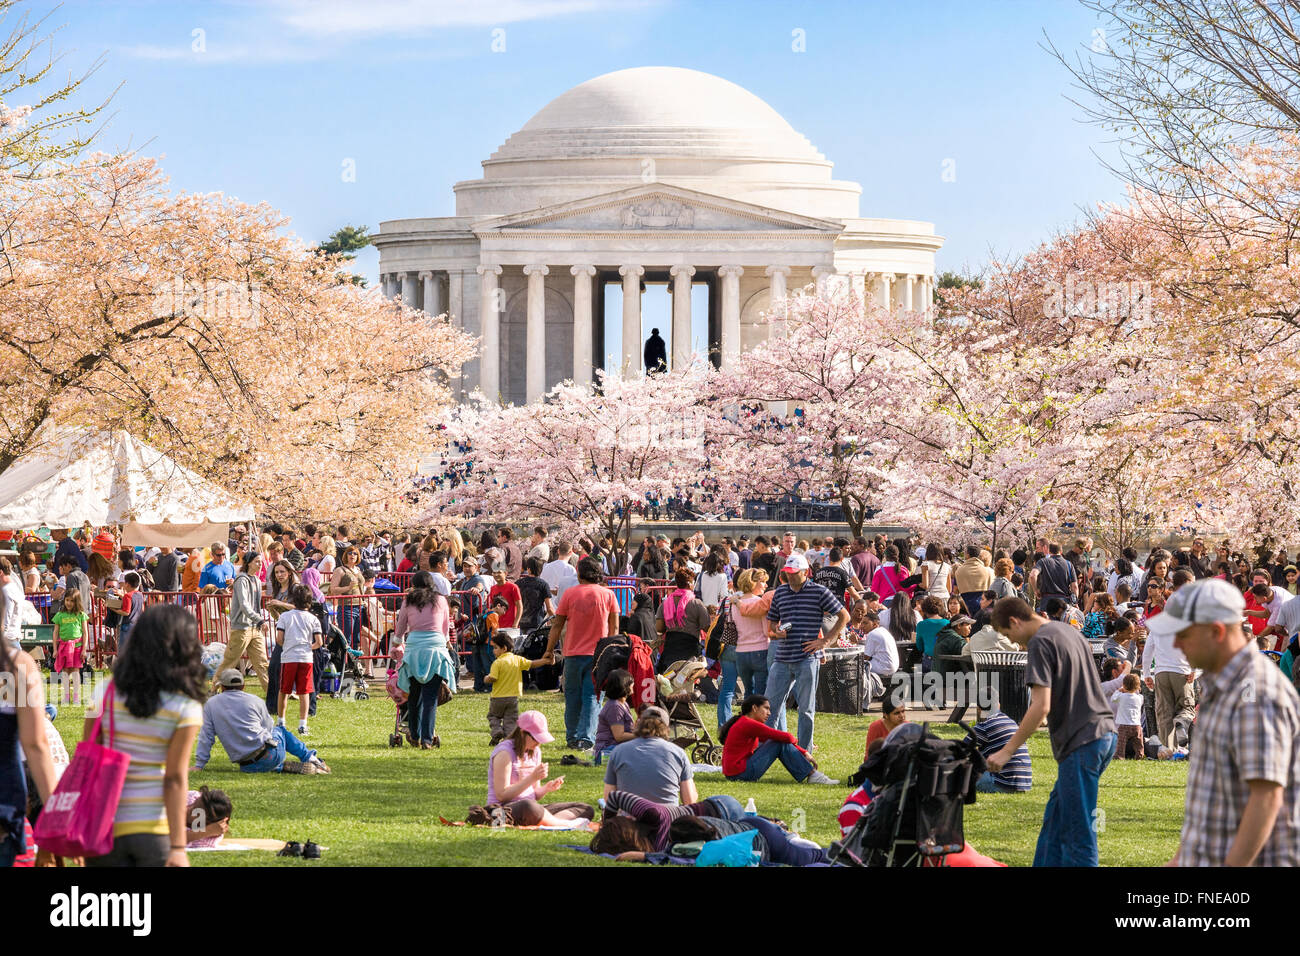 Washington DC Cherry blossoms Jefferson Memorial. Crowds on Sunday Cherry Blossom Festival. - Stock Image